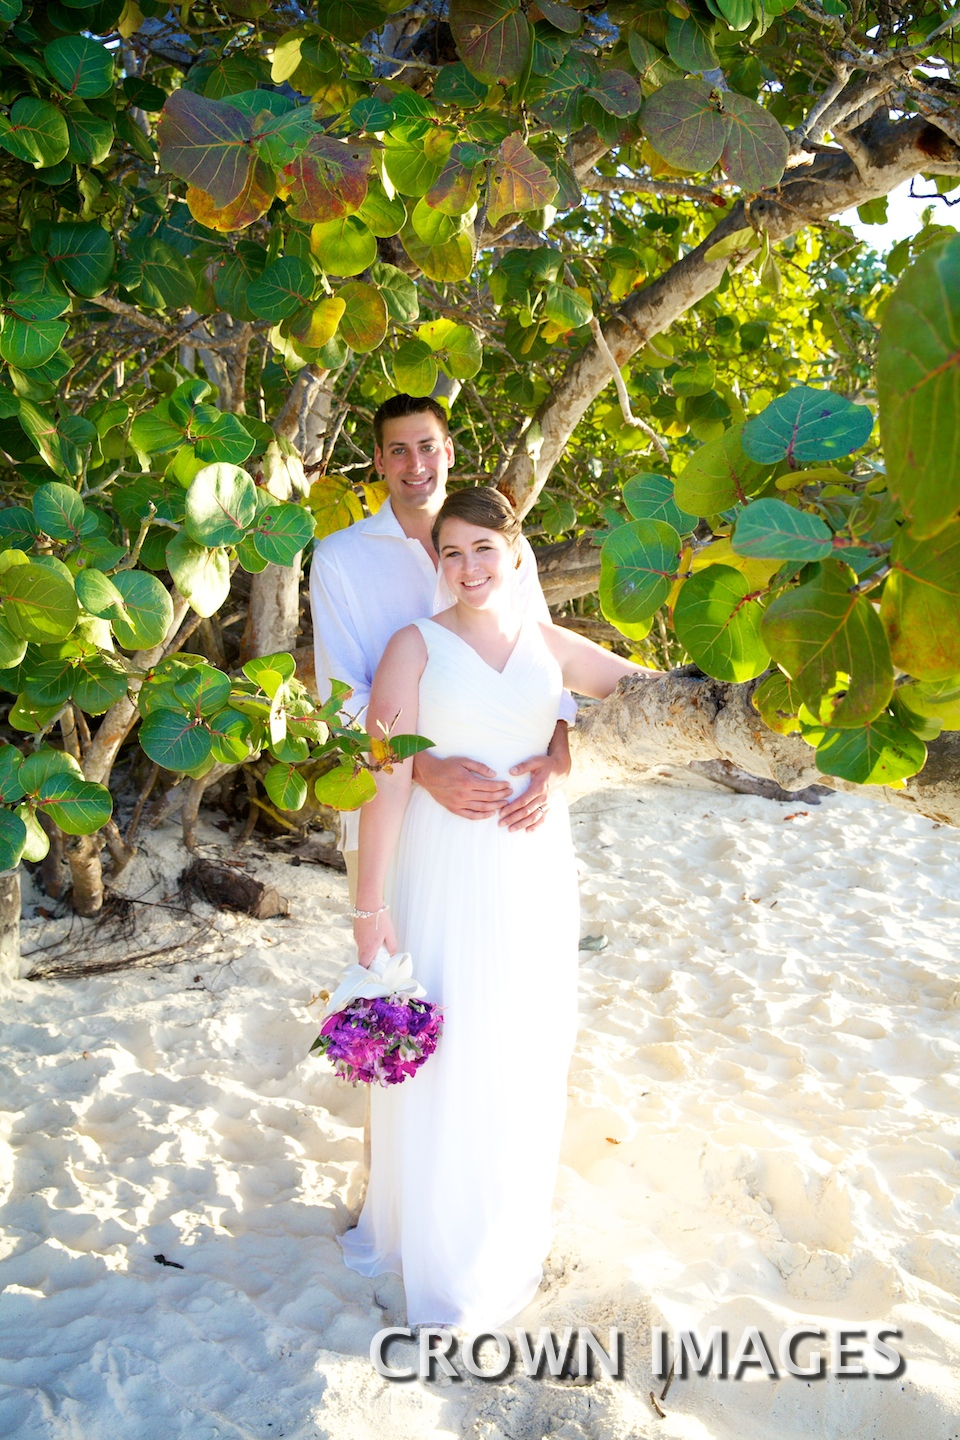 st_john_wedding_IMG_7167.jpg